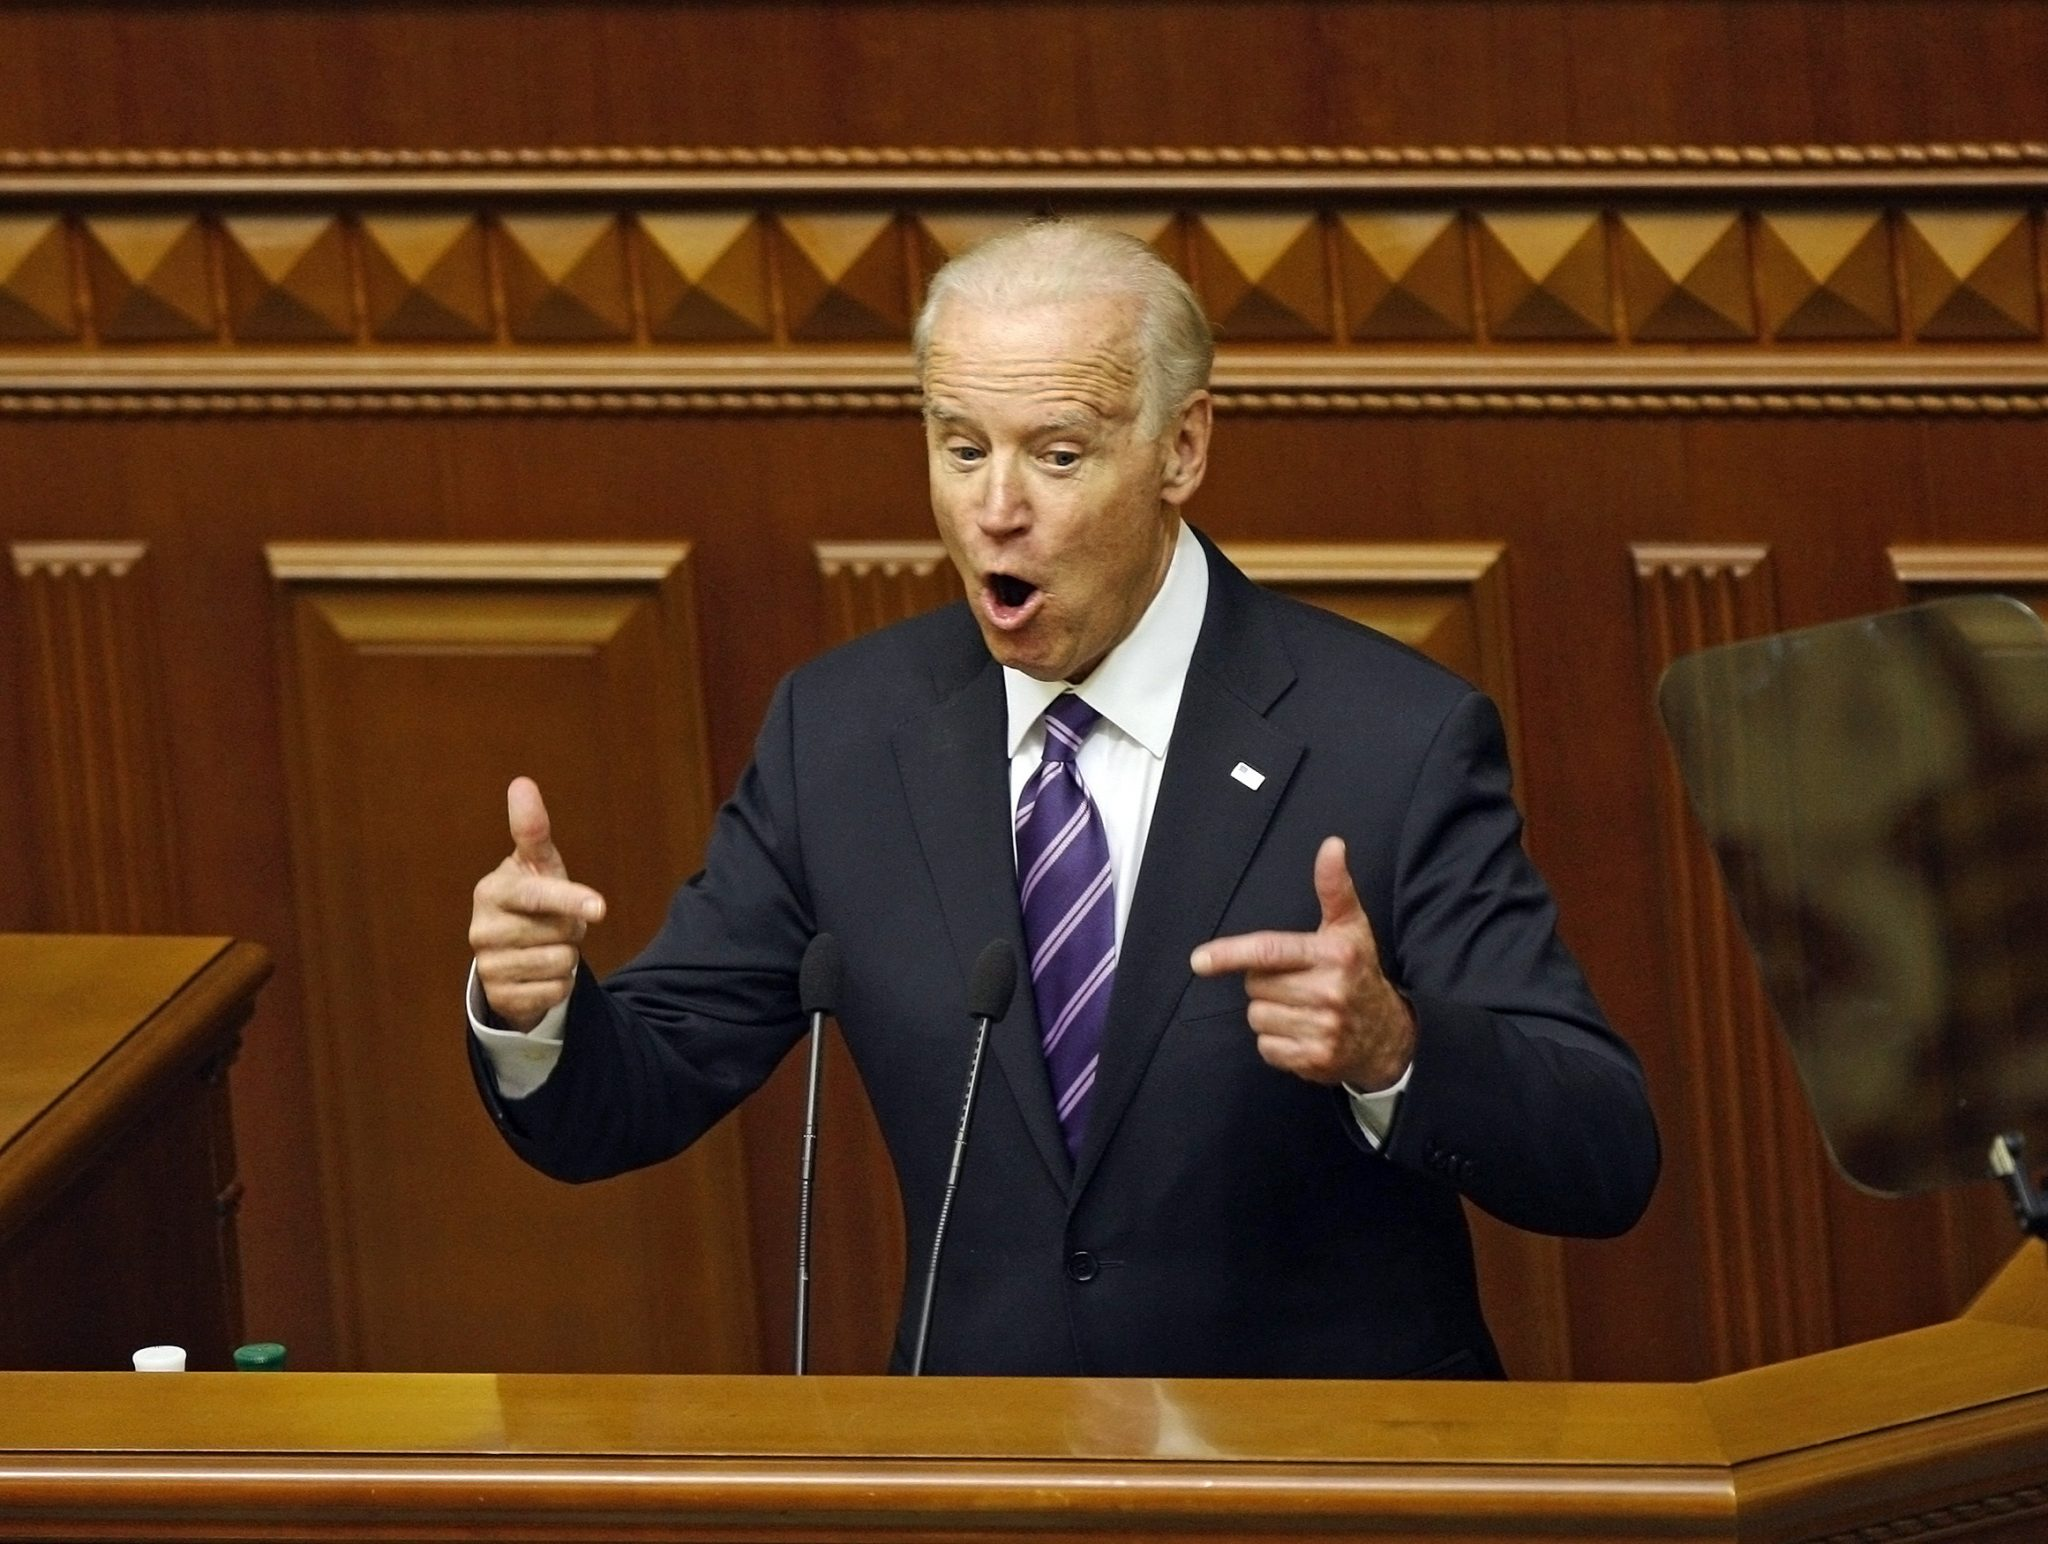 Joe Biden addressing Ukrainian parliament on Dec. 8, 2015 (viewimage/Shutterstock.com)